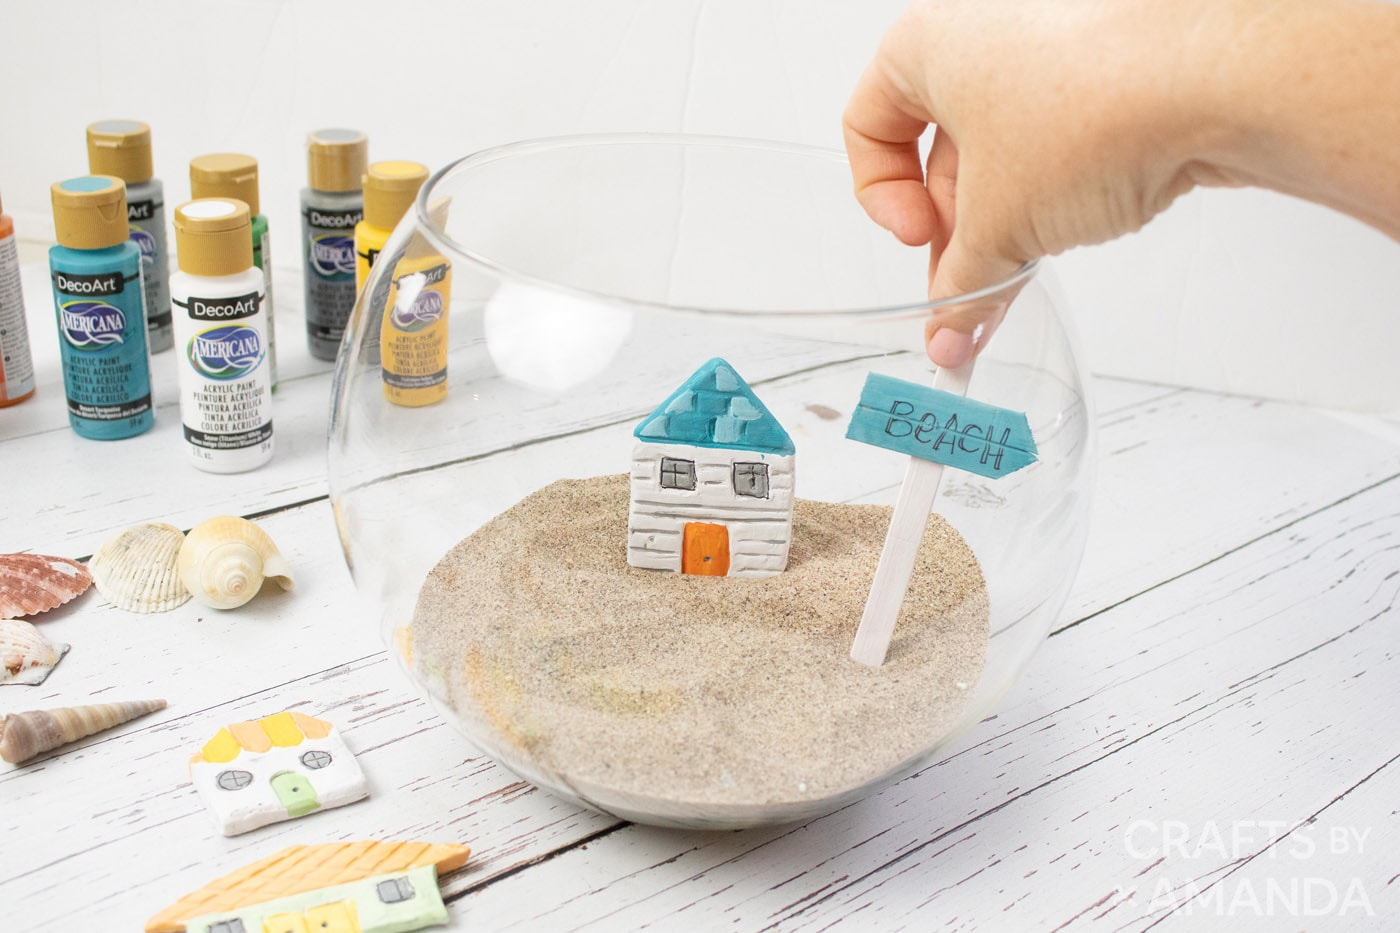 placing clay house and popsicle stick sign into fishbowl with sand